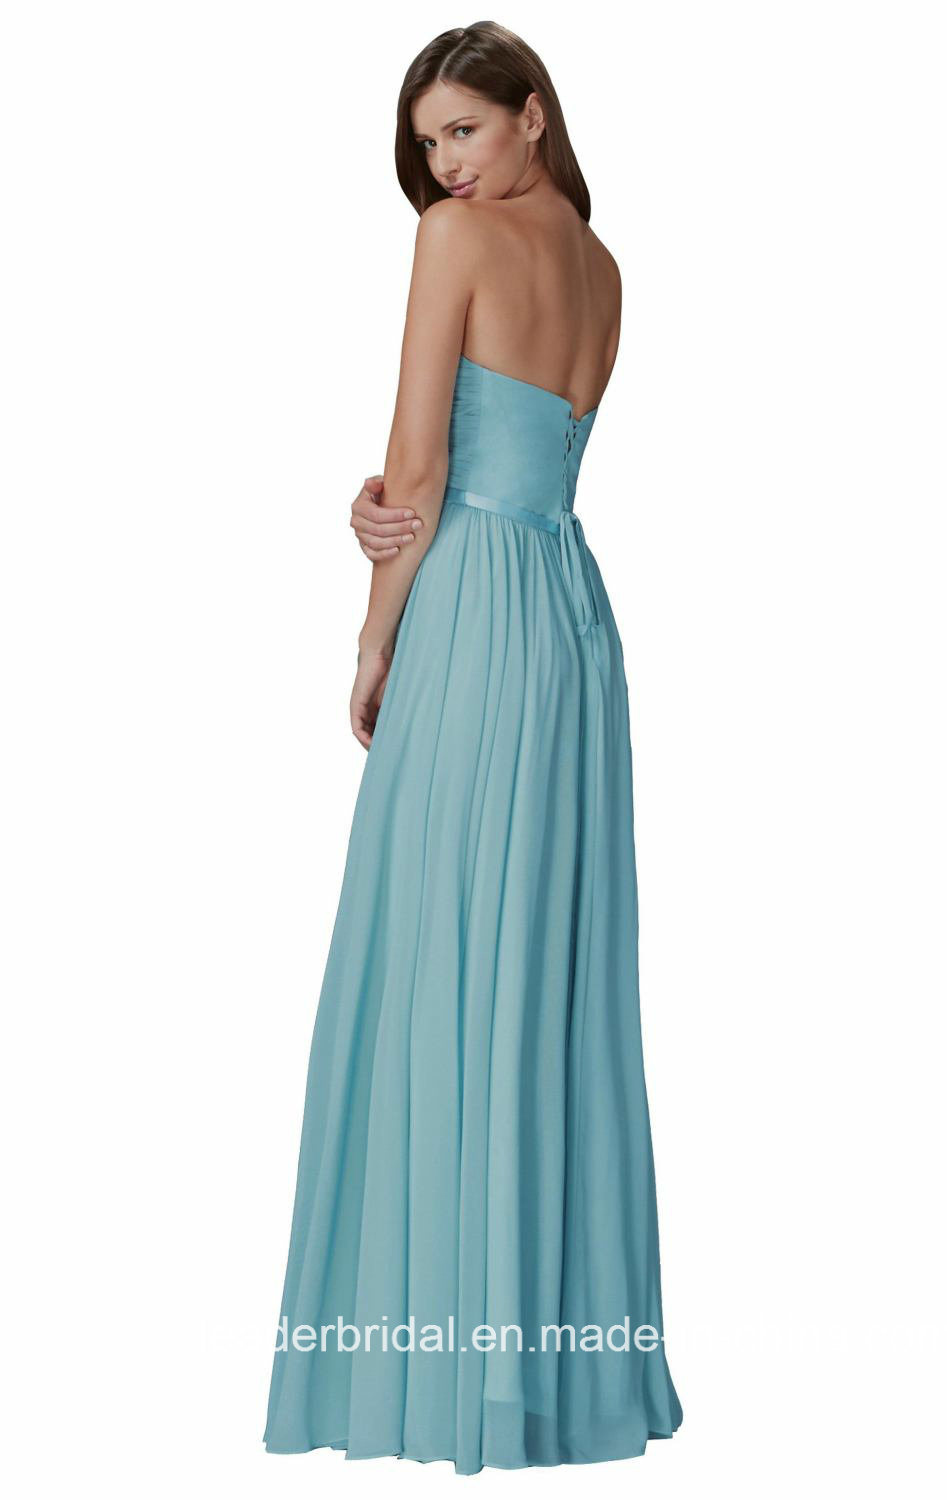 2018 Cocktail Homecoming Dresses Empire Bridesmaid Dress G11385 pictures & photos